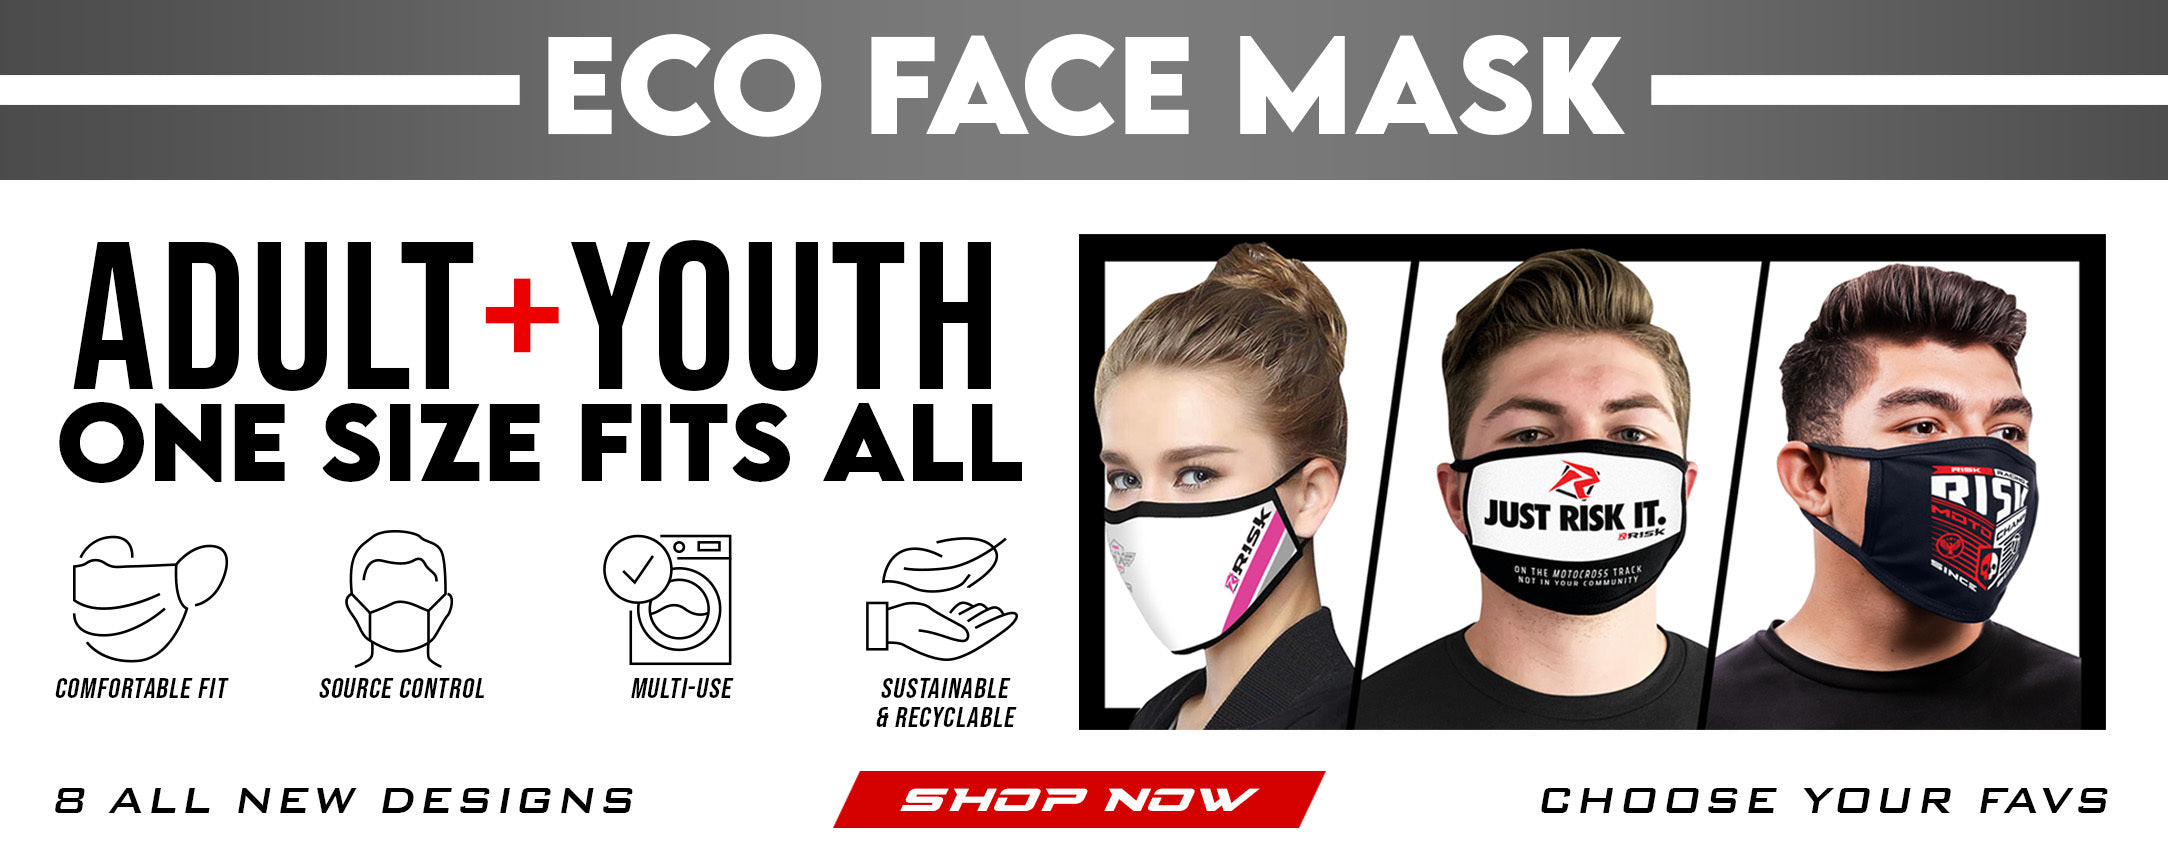 Reusable and washable cotton face masks/face covering by Risk Racing